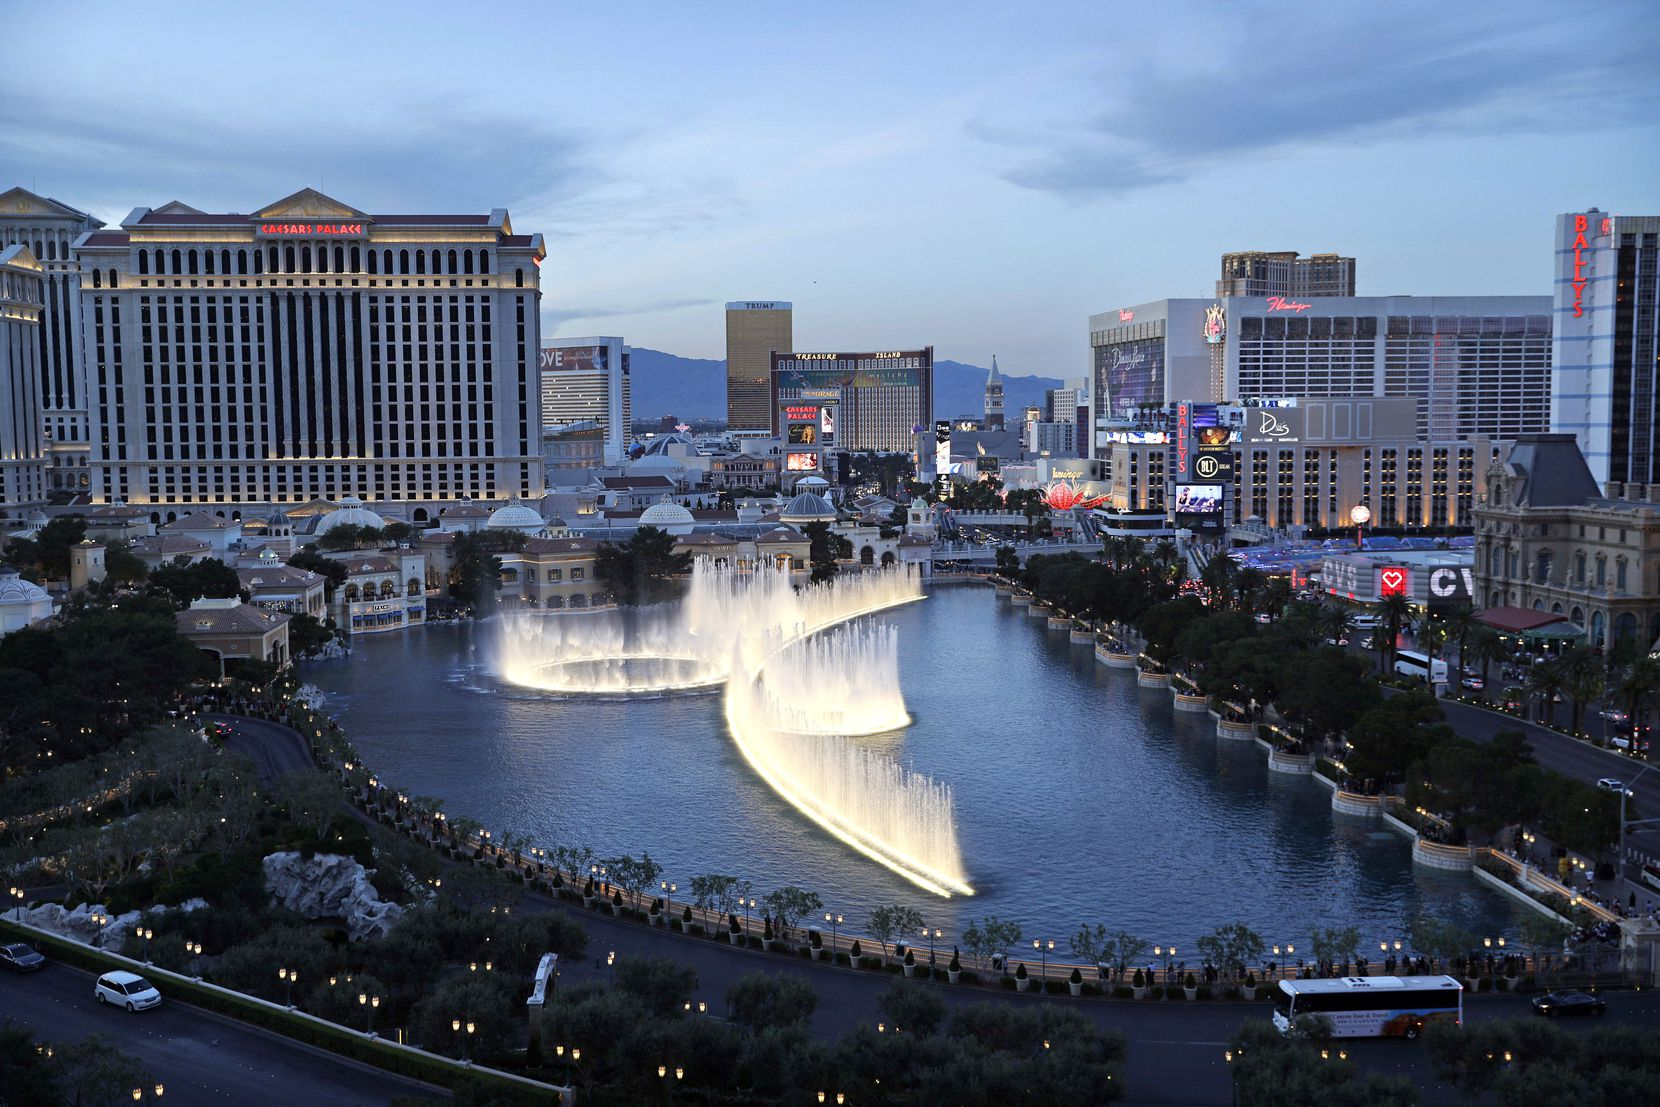 In this April 4, 2017, file photo, the fountains of Bellagio erupt along the Las Vegas Strip in Las Vegas. Pick out a good spot on the sidewalk in front of the Bellagio to catch the free dancing fountain show, which is offered several times each day -- and at night, when the Las Vegas Strip feels magical.